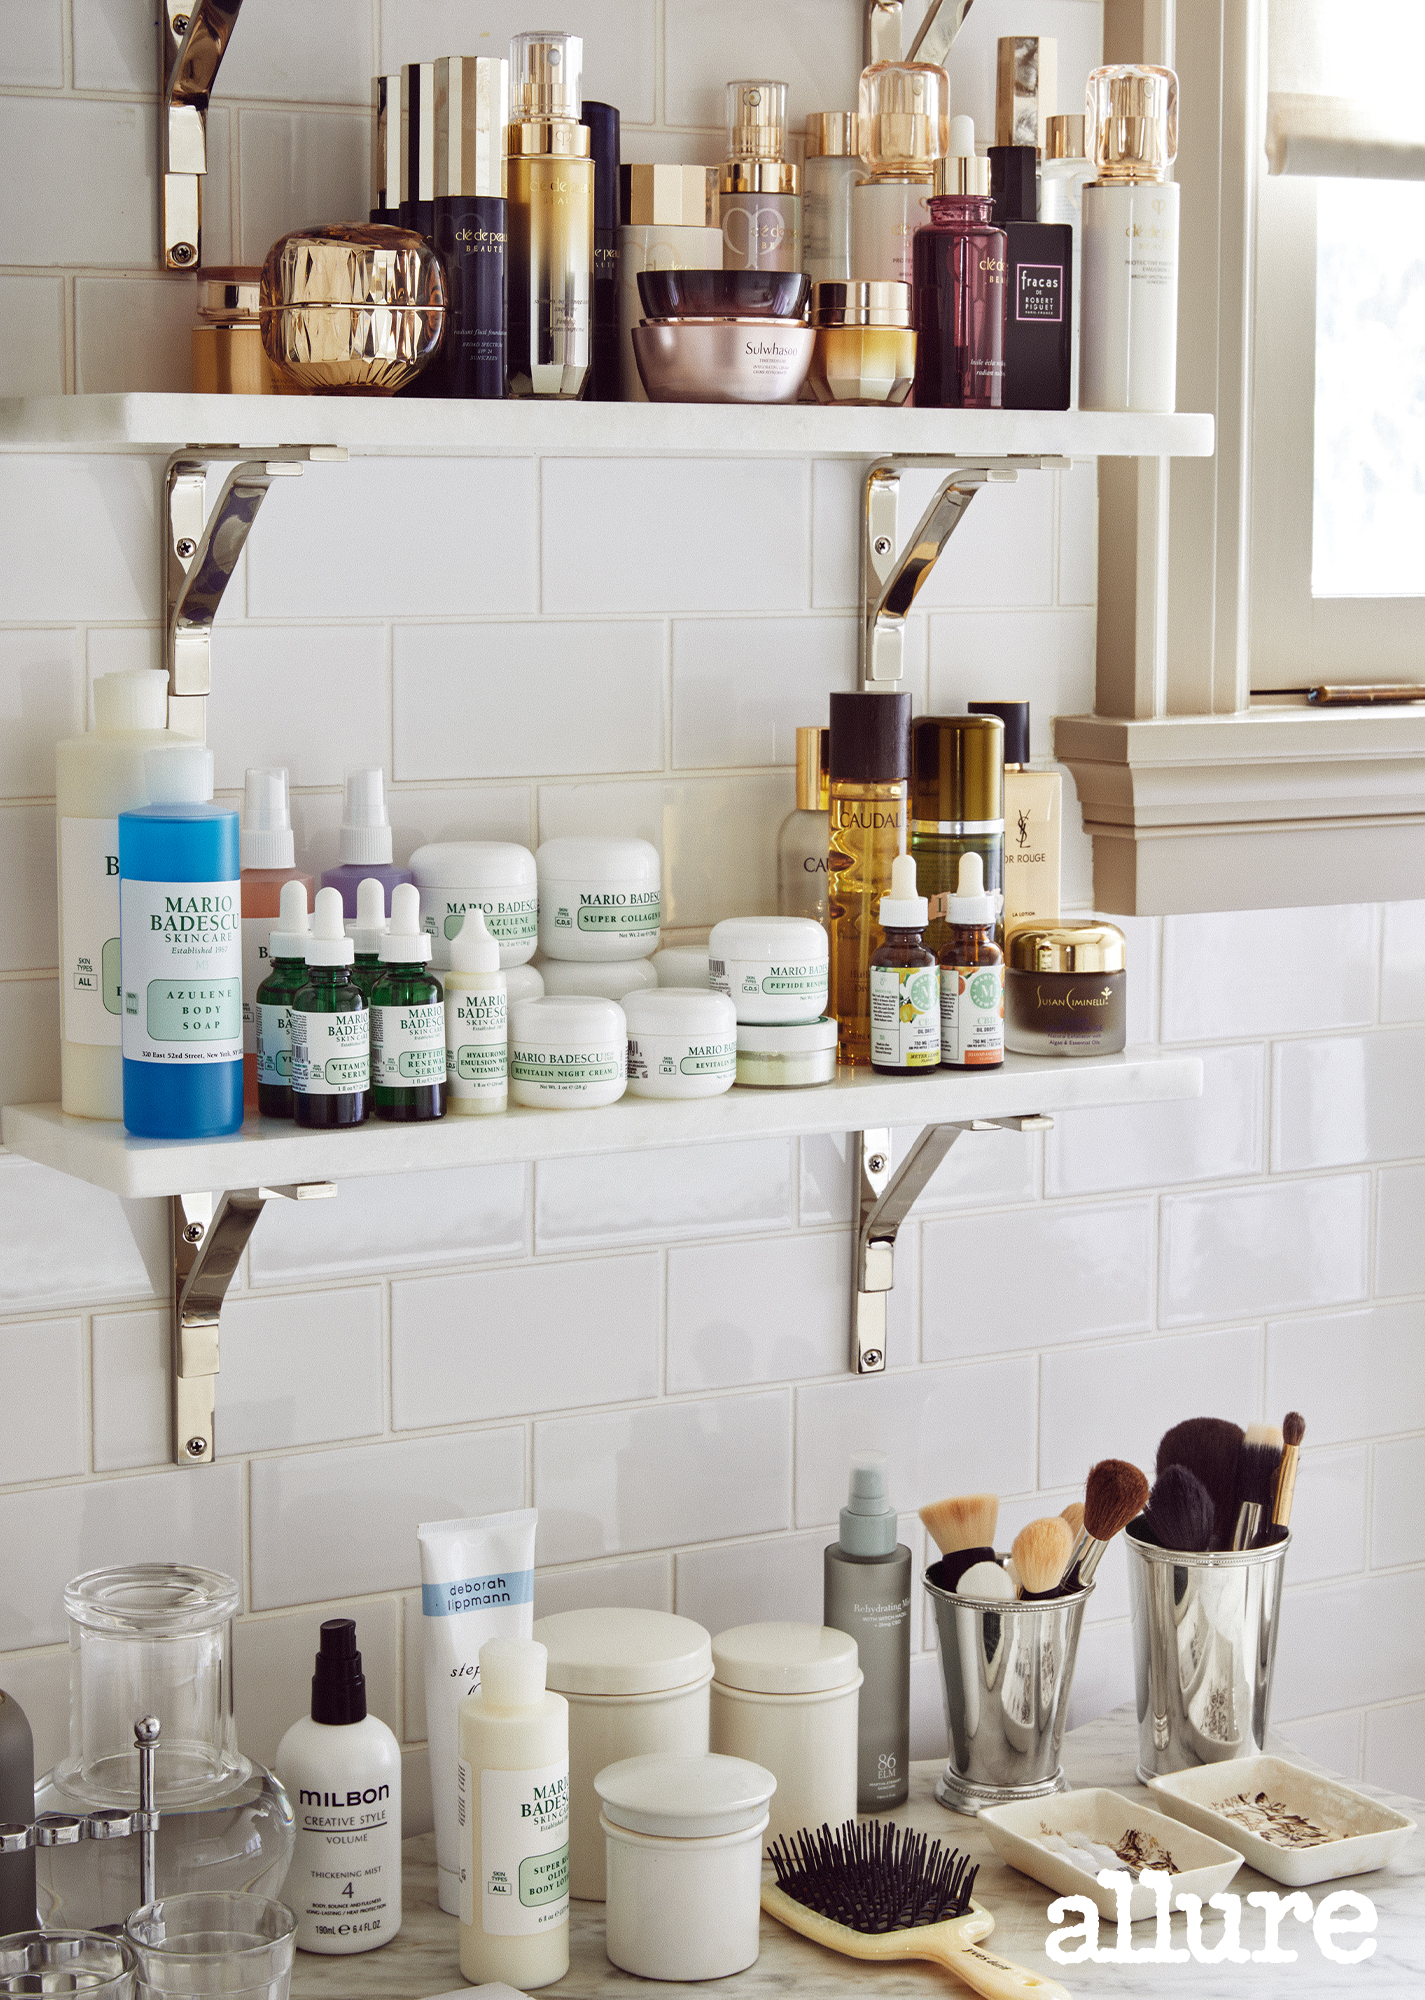 martha stewart's bathroom with shelves of beauty products